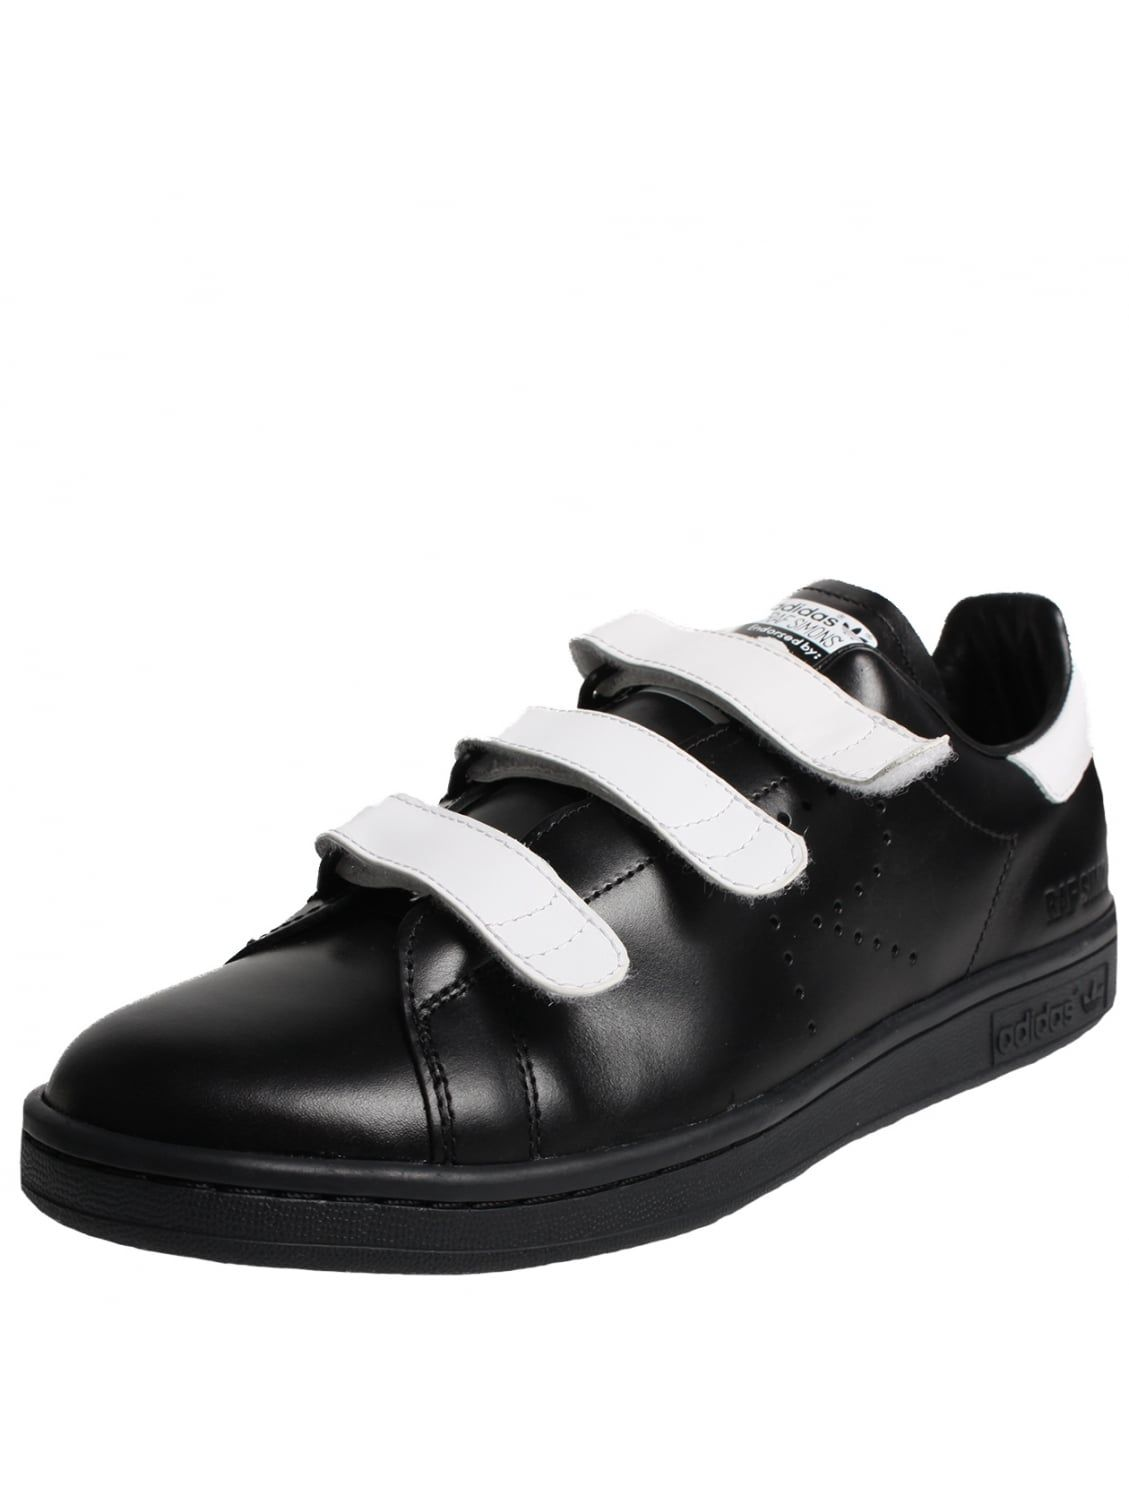 Black � RAF SIMONS Adidas Stan Smith ...